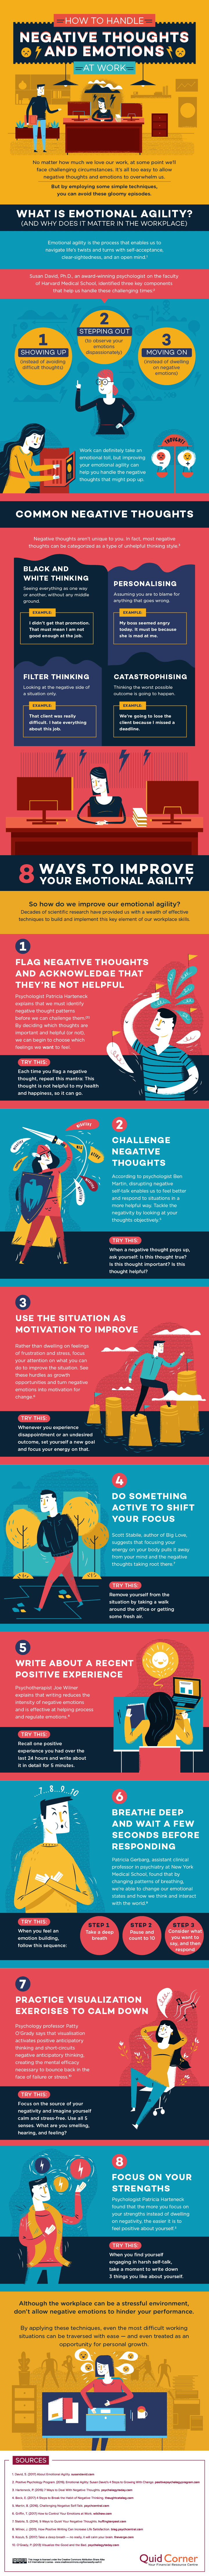 How to Handle Negative Thoughts and Emotions at Work Infographic